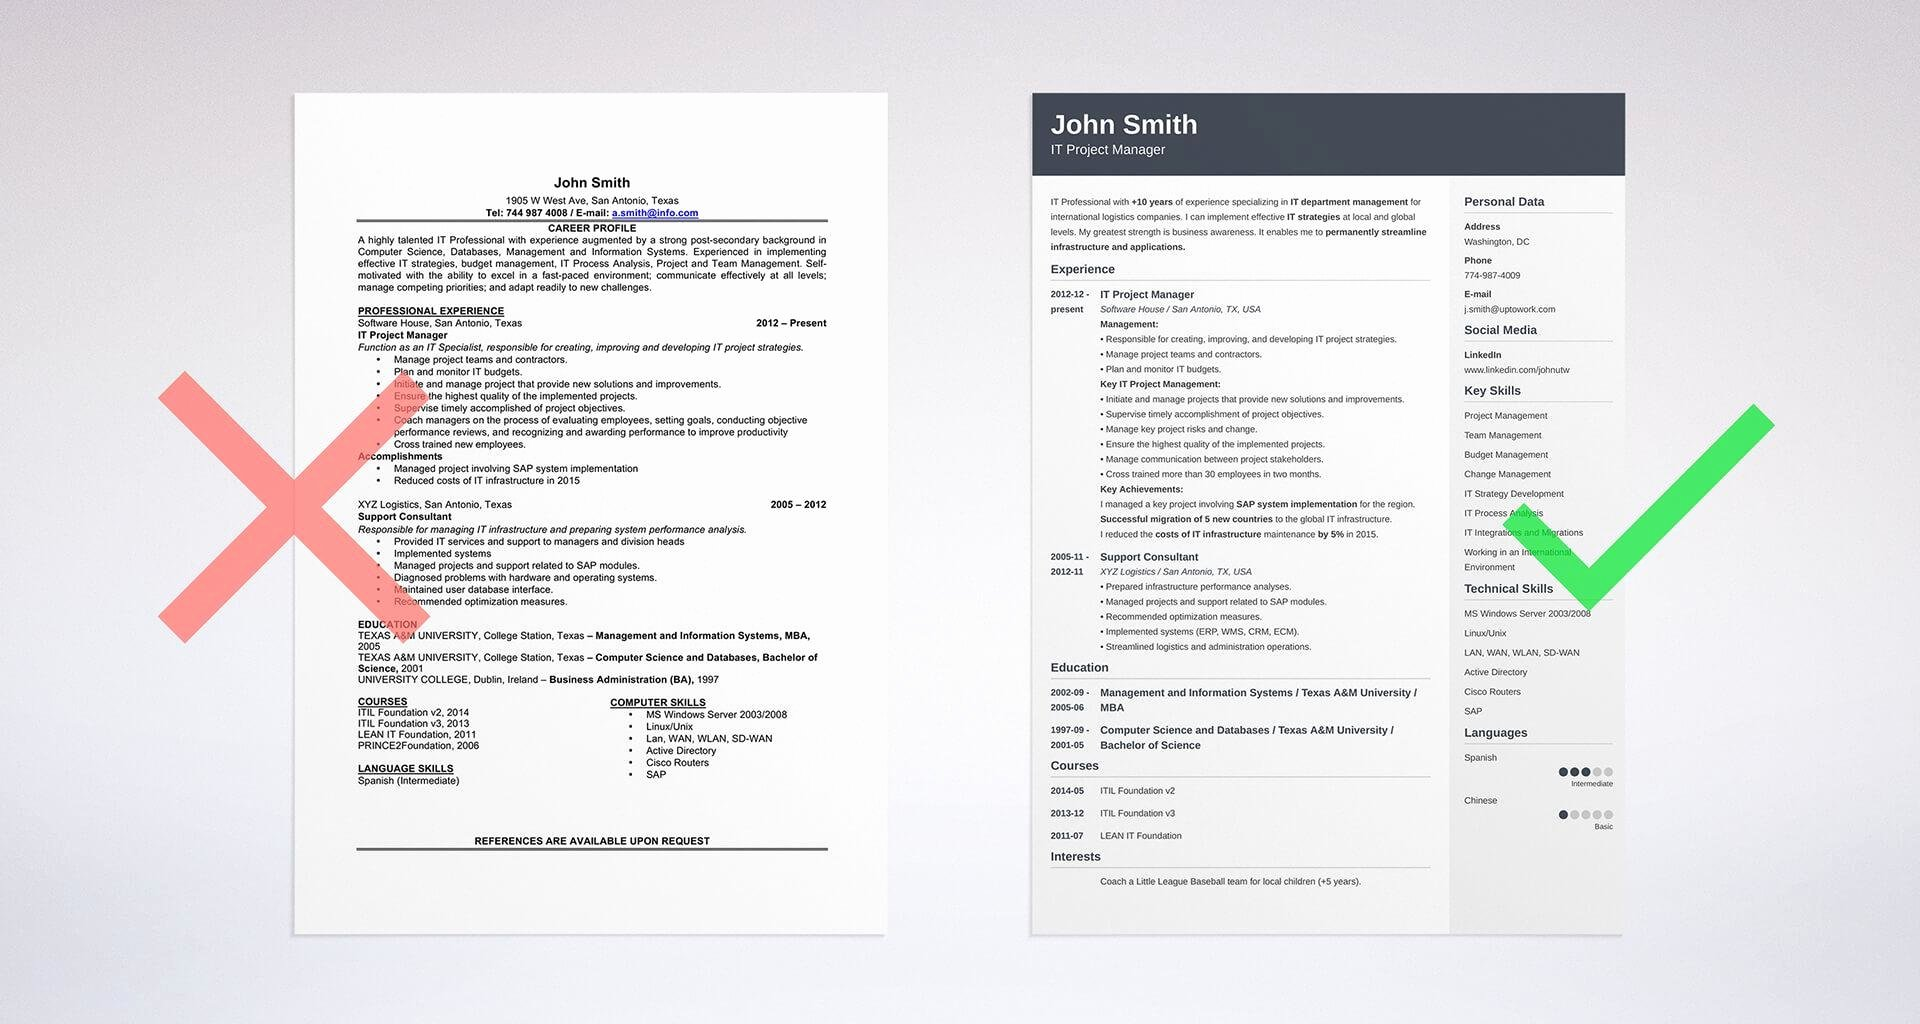 Degree In Progress Resume Lovely How to Put Your Education On A Resume [tips & Examples]